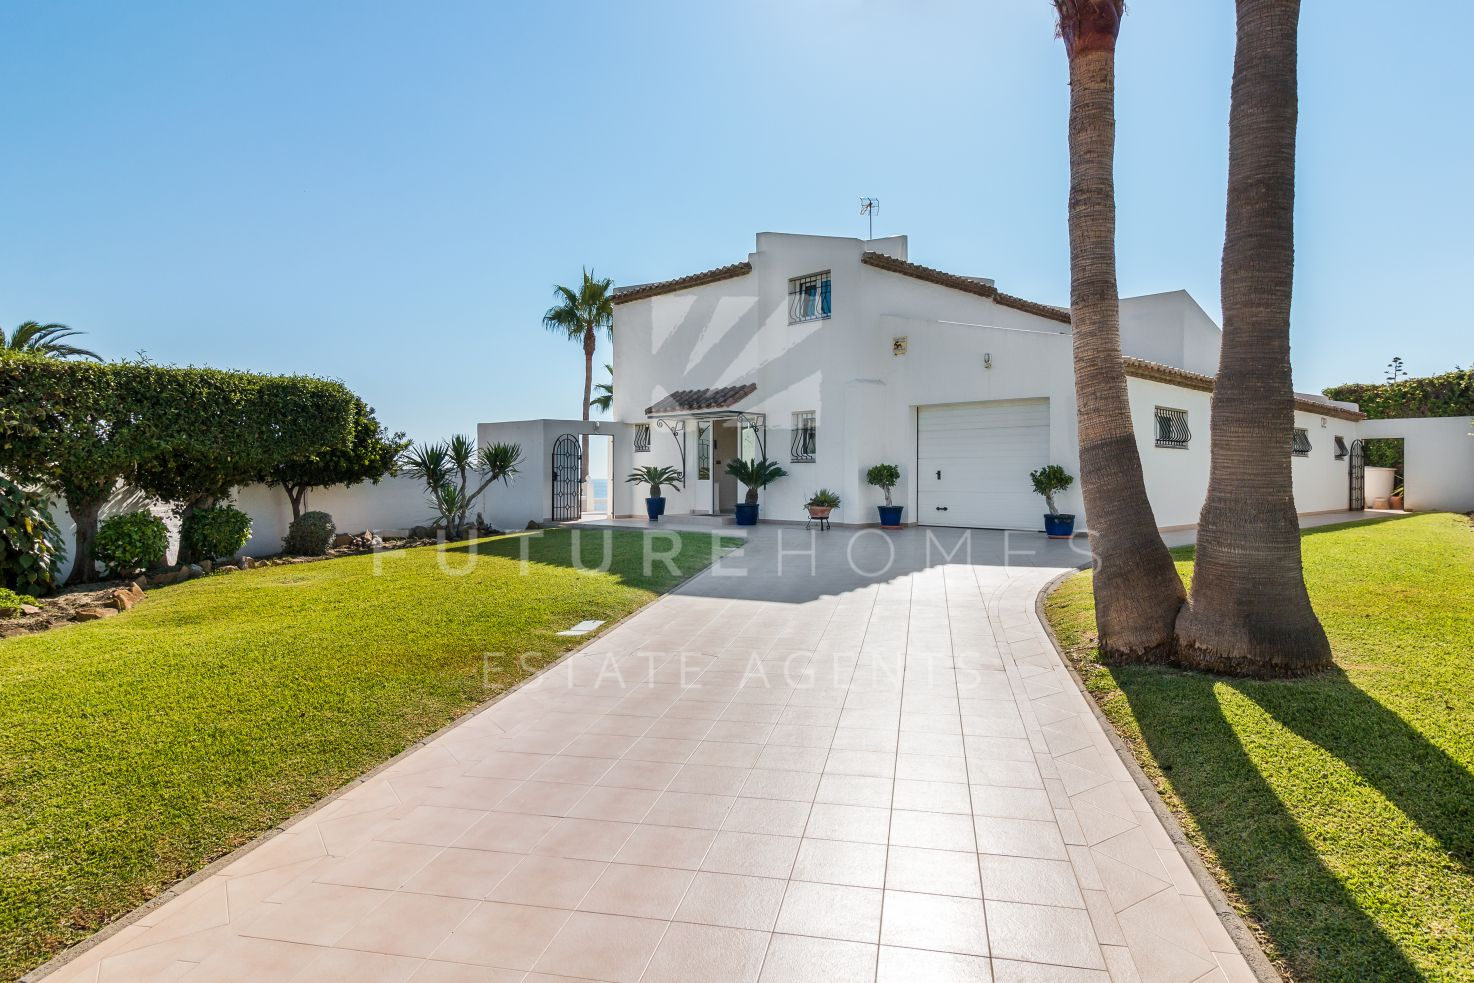 Front line beach detached villa with guest accommodation and private pool.